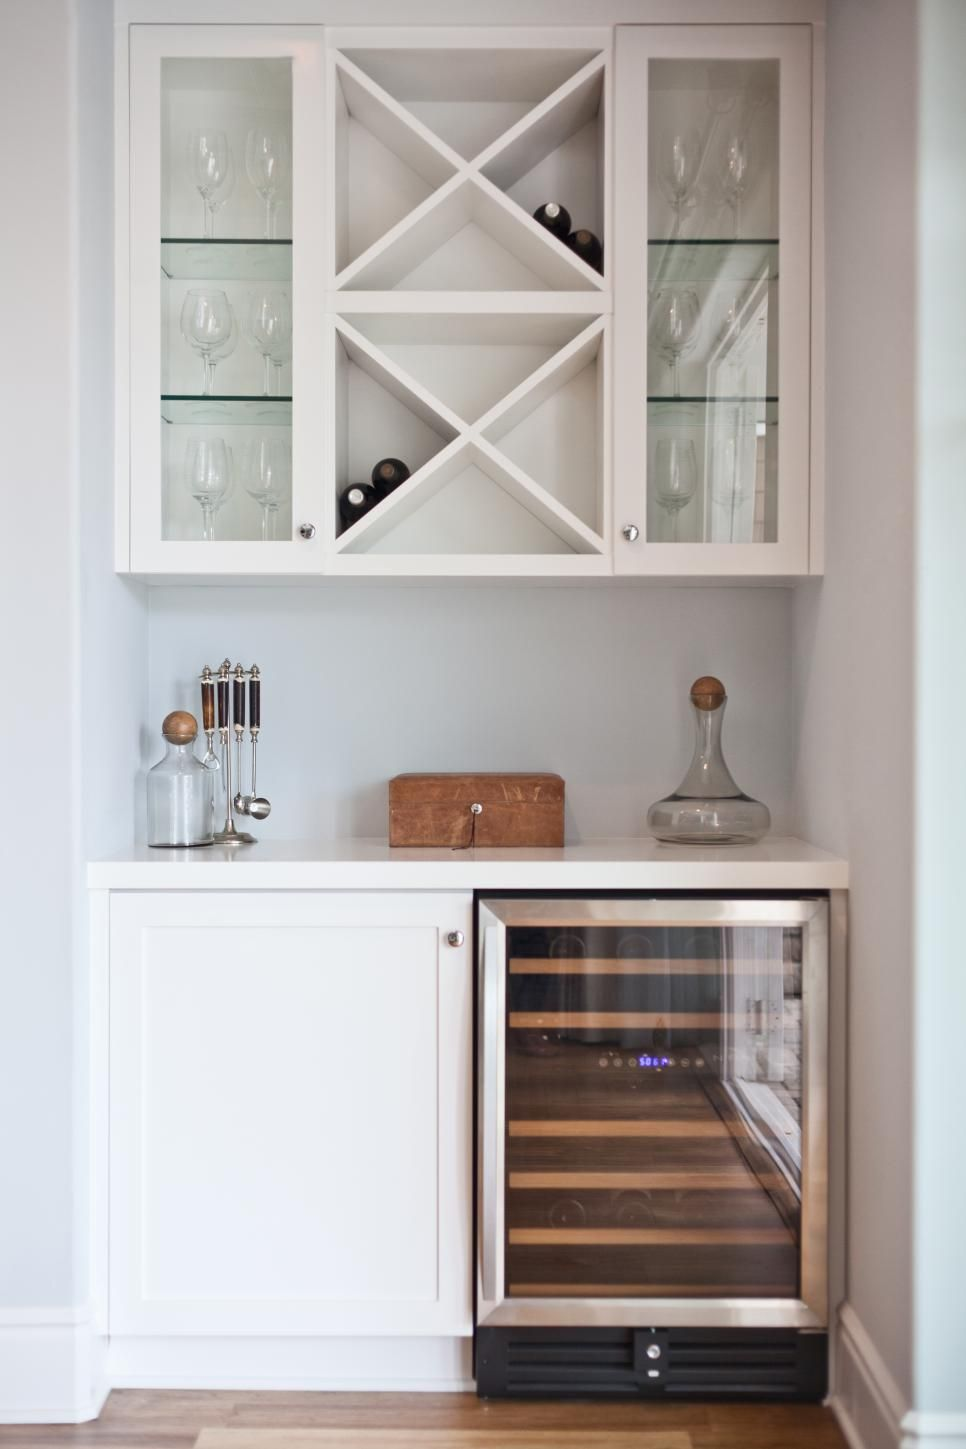 A Clean And Organized Dry Bar Is A Great Option For A Small Nook Here A Wine Refrigerator And